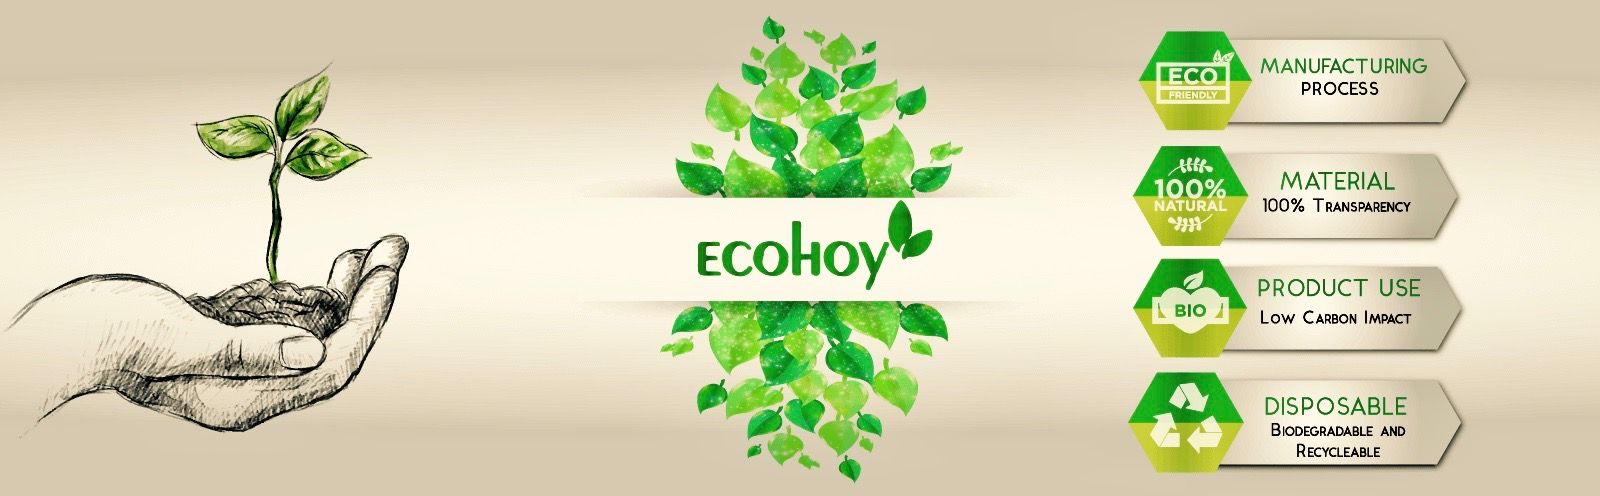 Eco-friendly and Sustainable Products at Ecohoy